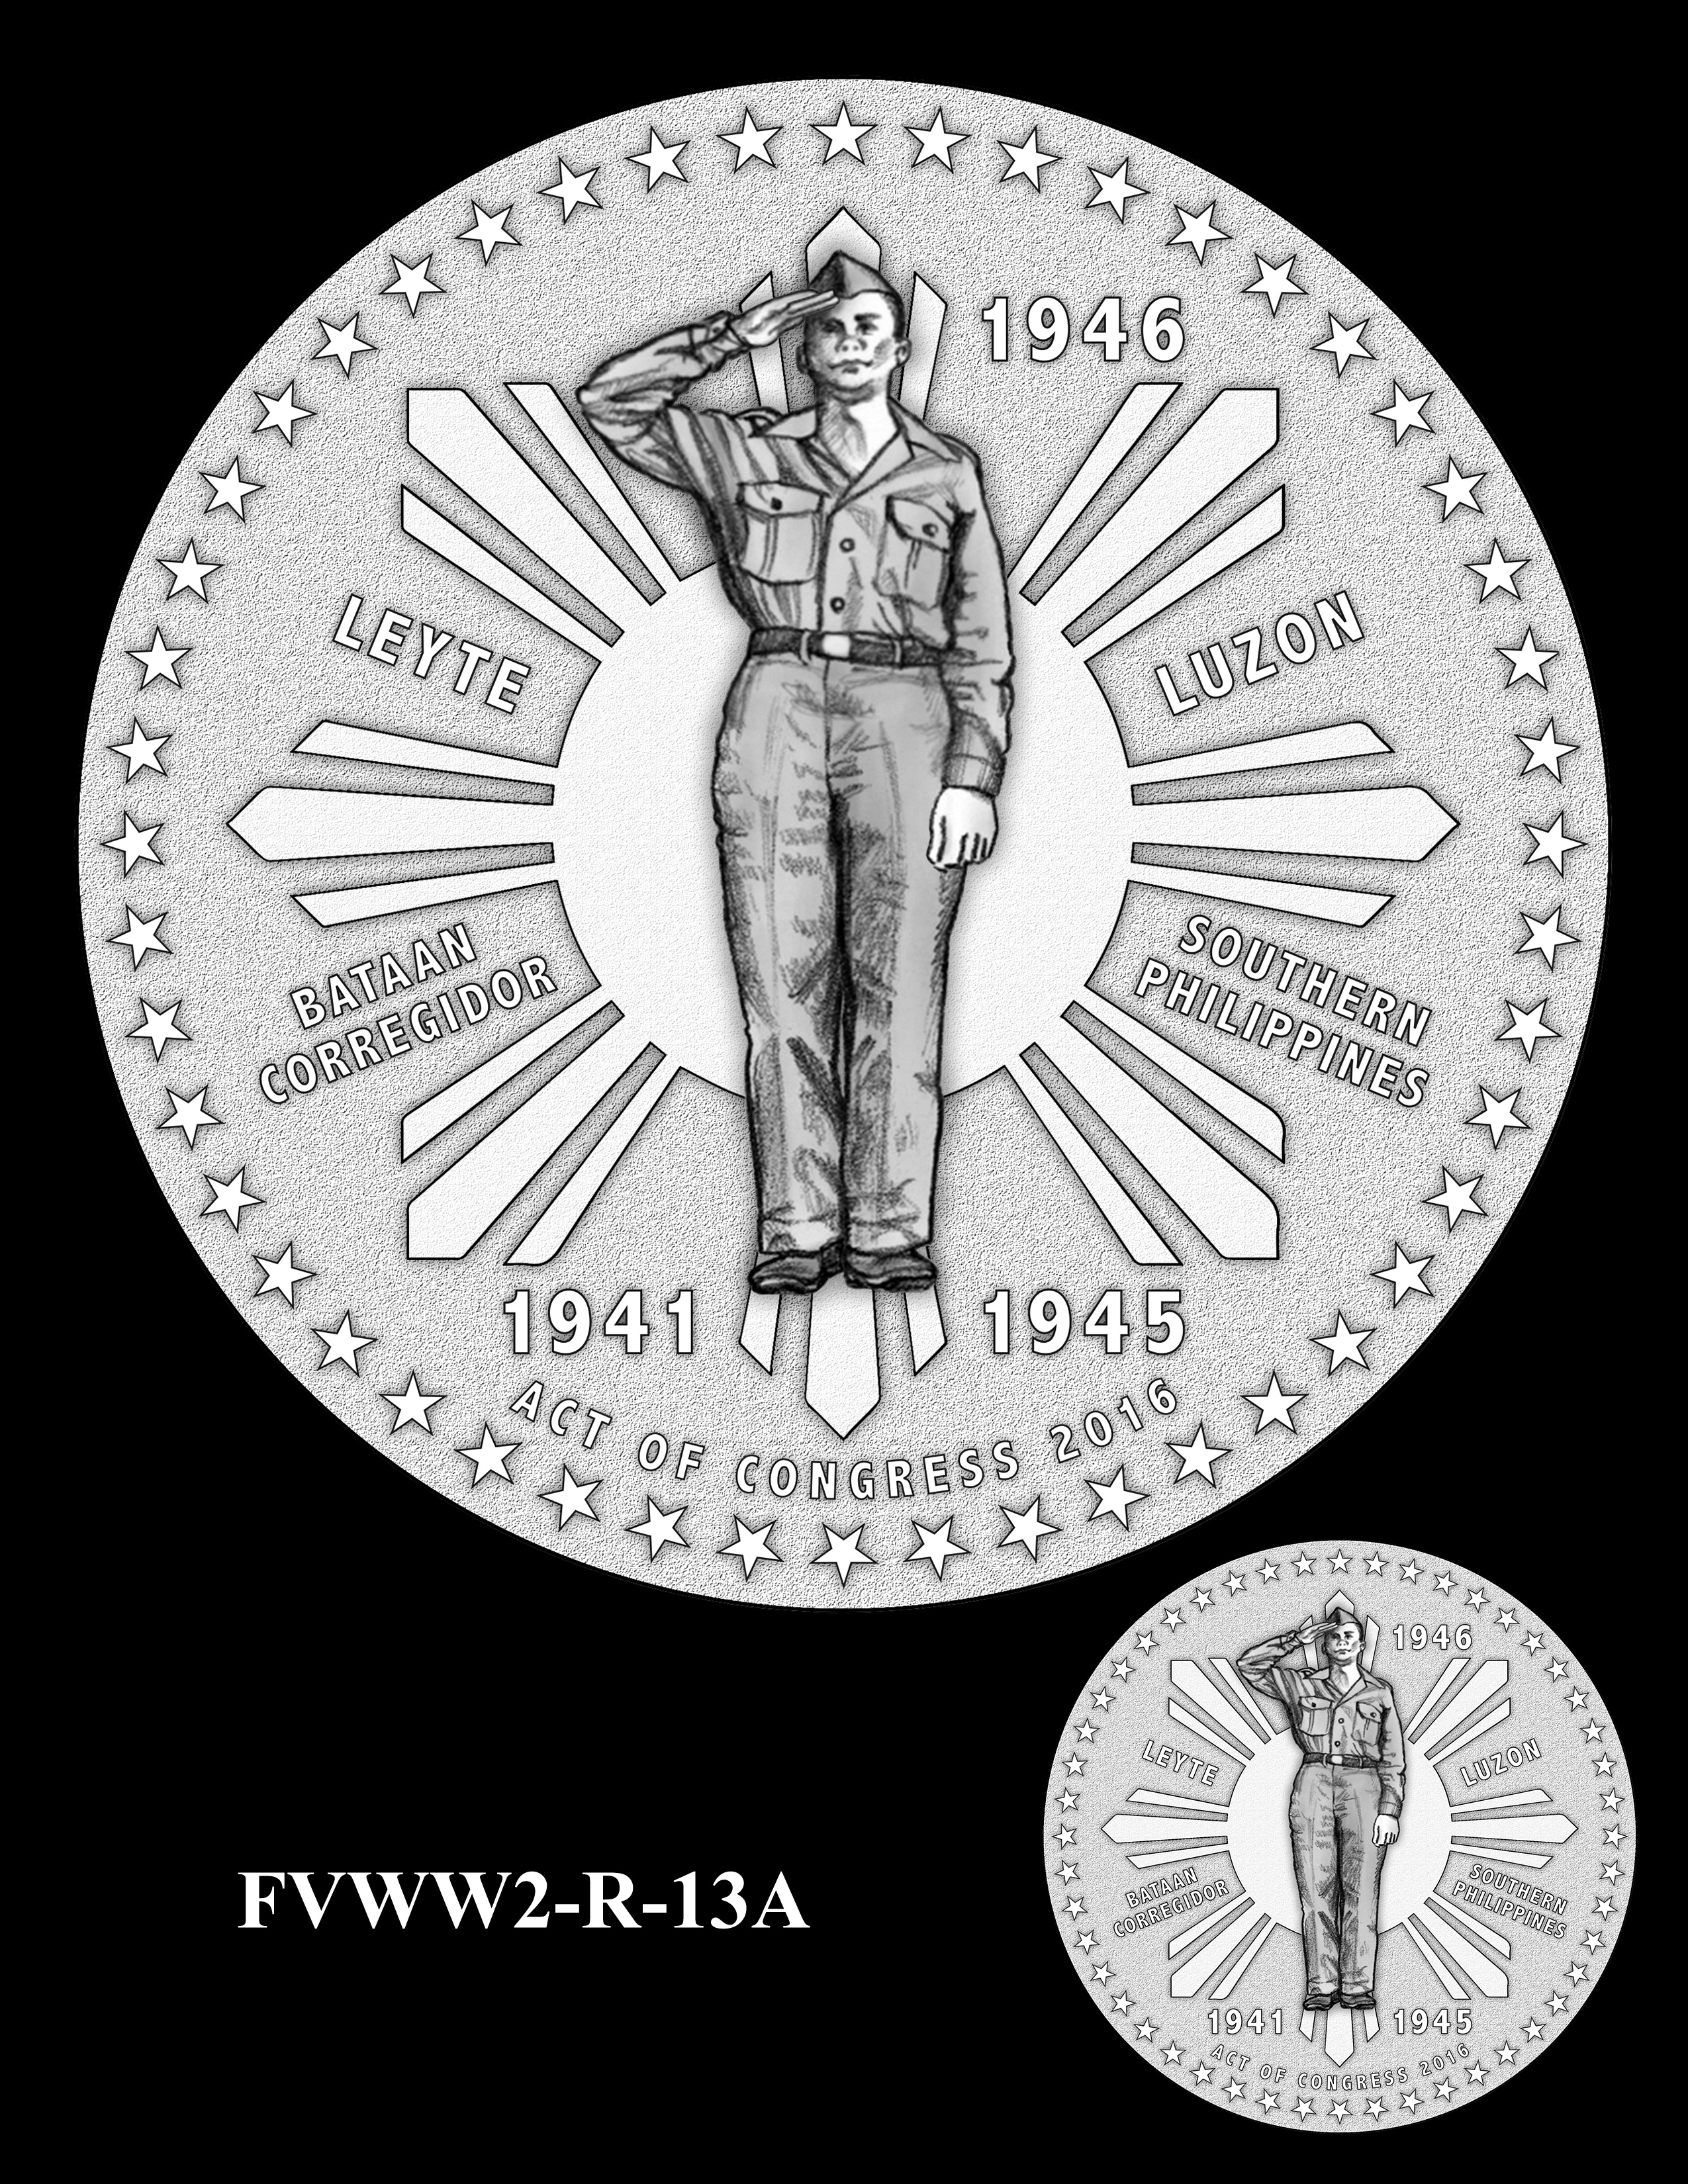 FVWW2-R-13A -- Filipino Veterans of World War II Congressional Gold Medal